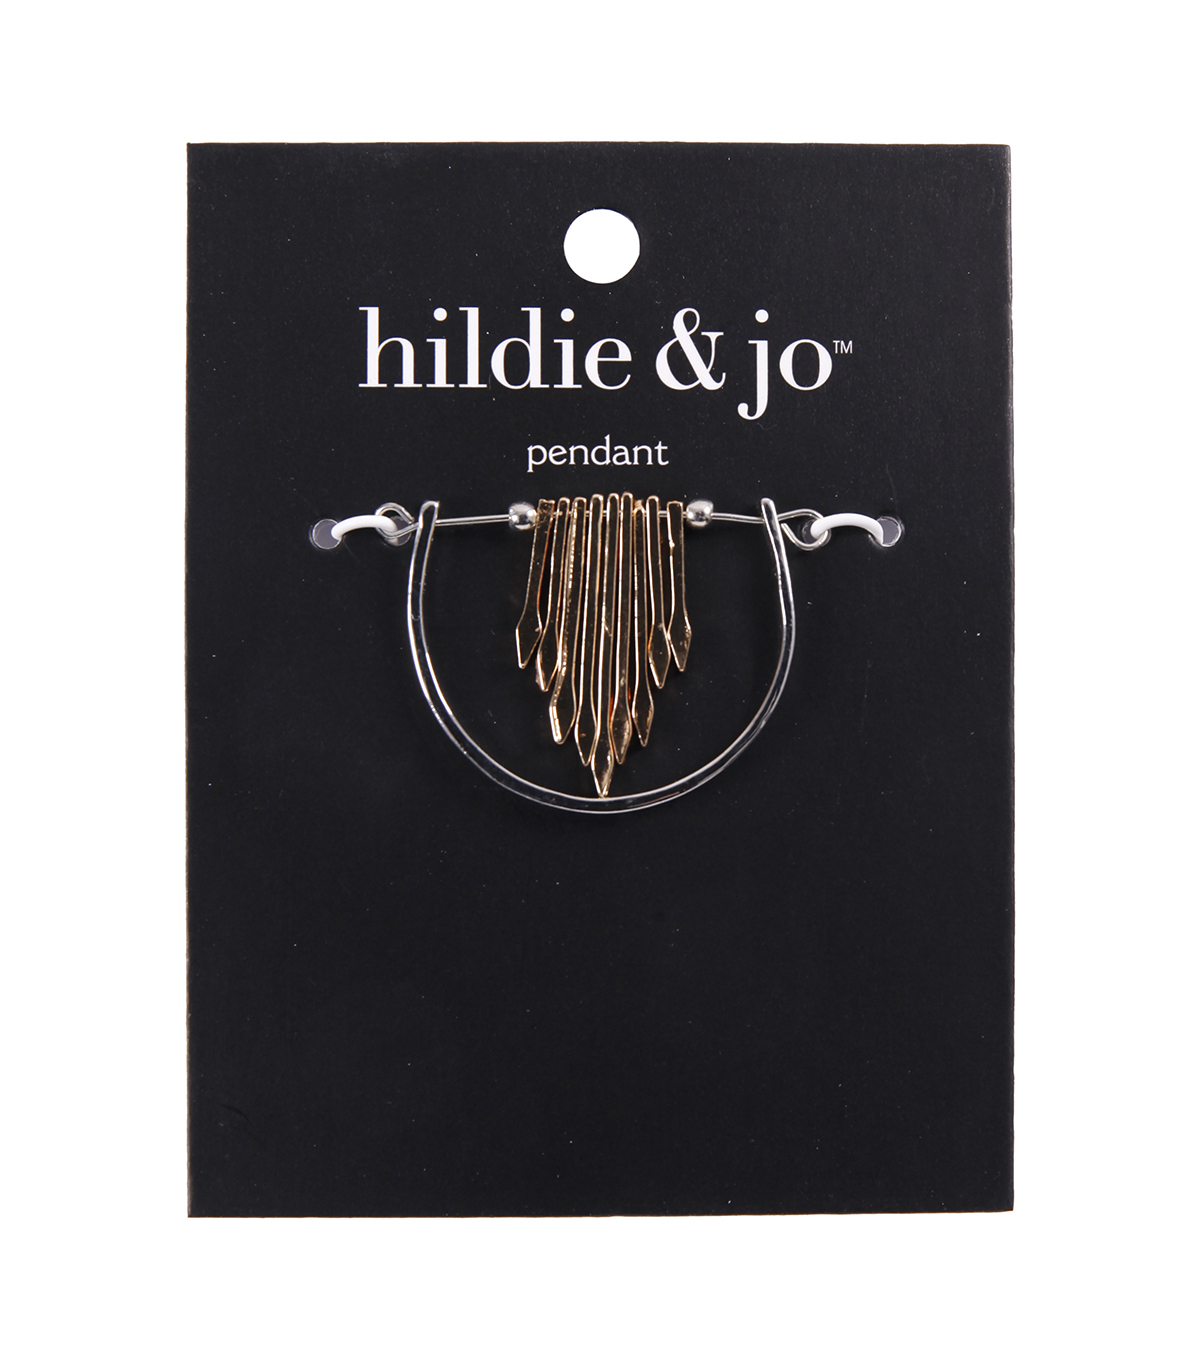 hildie & jo Minimalist Half Circle with Arrow Pendant-Gold & Silver